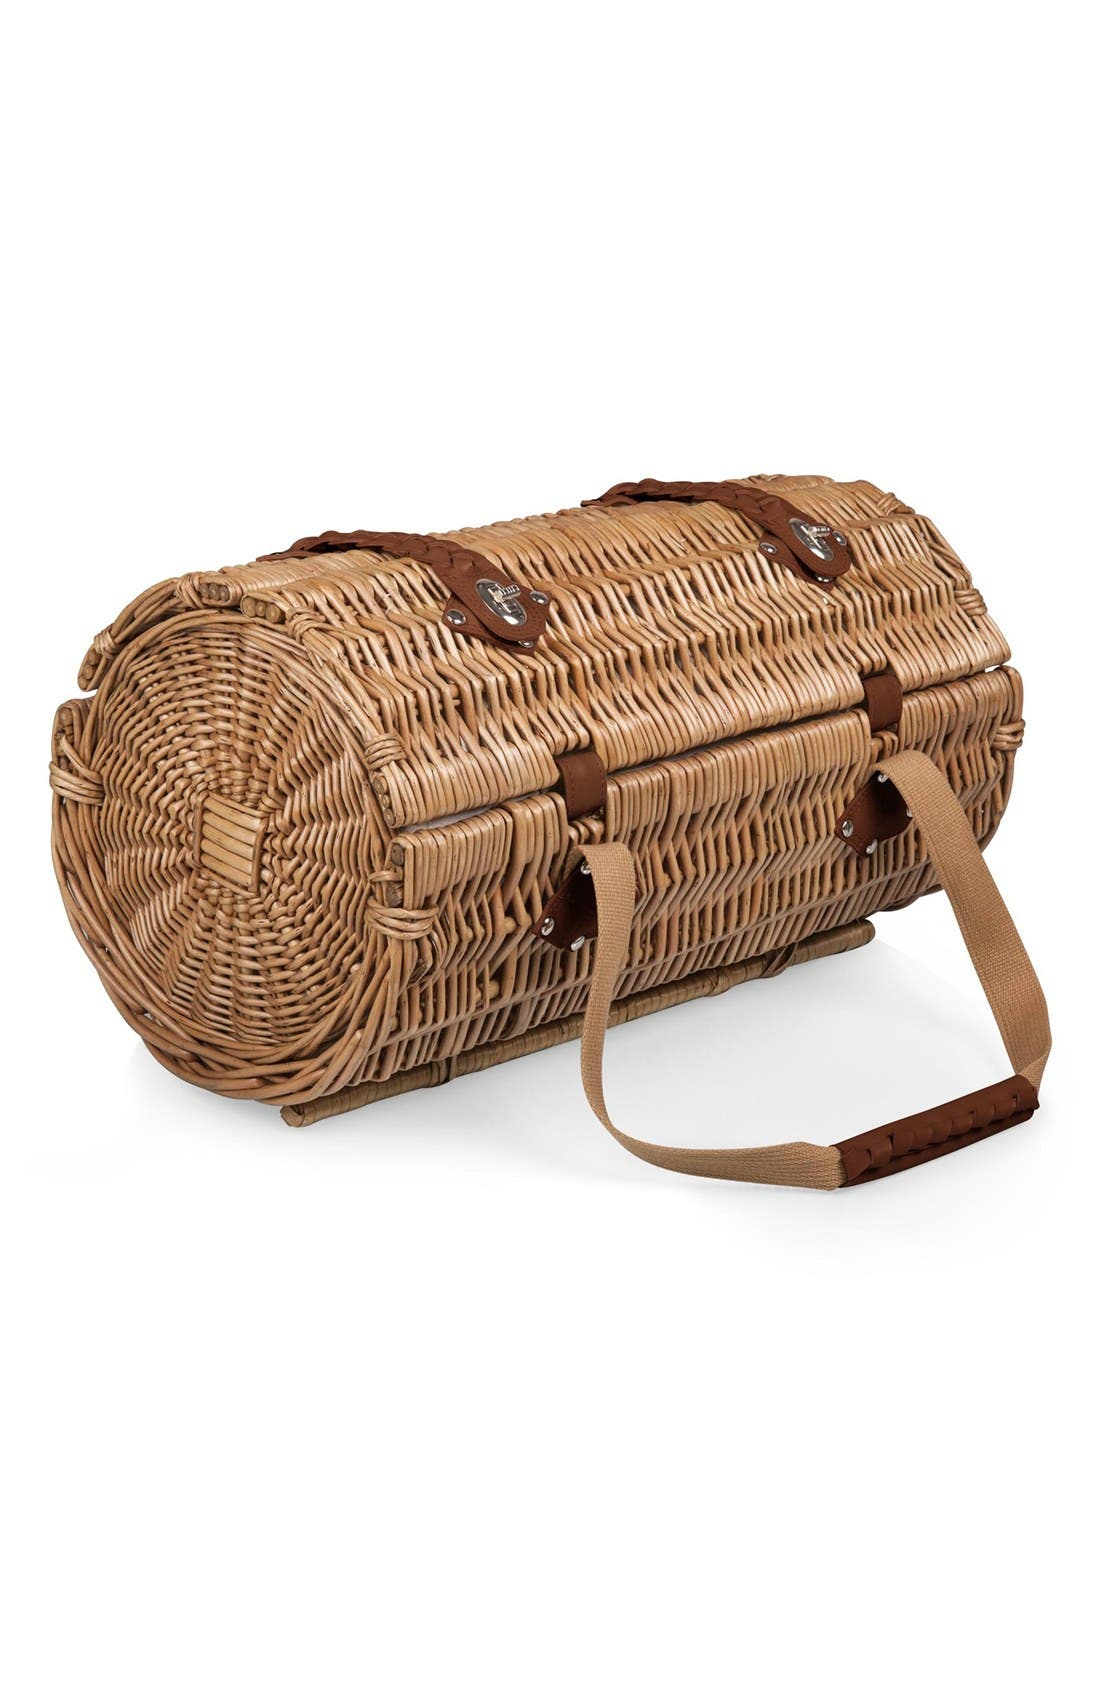 'Verona' Wicker Picnic Basket,                             Alternate thumbnail 3, color,                             400